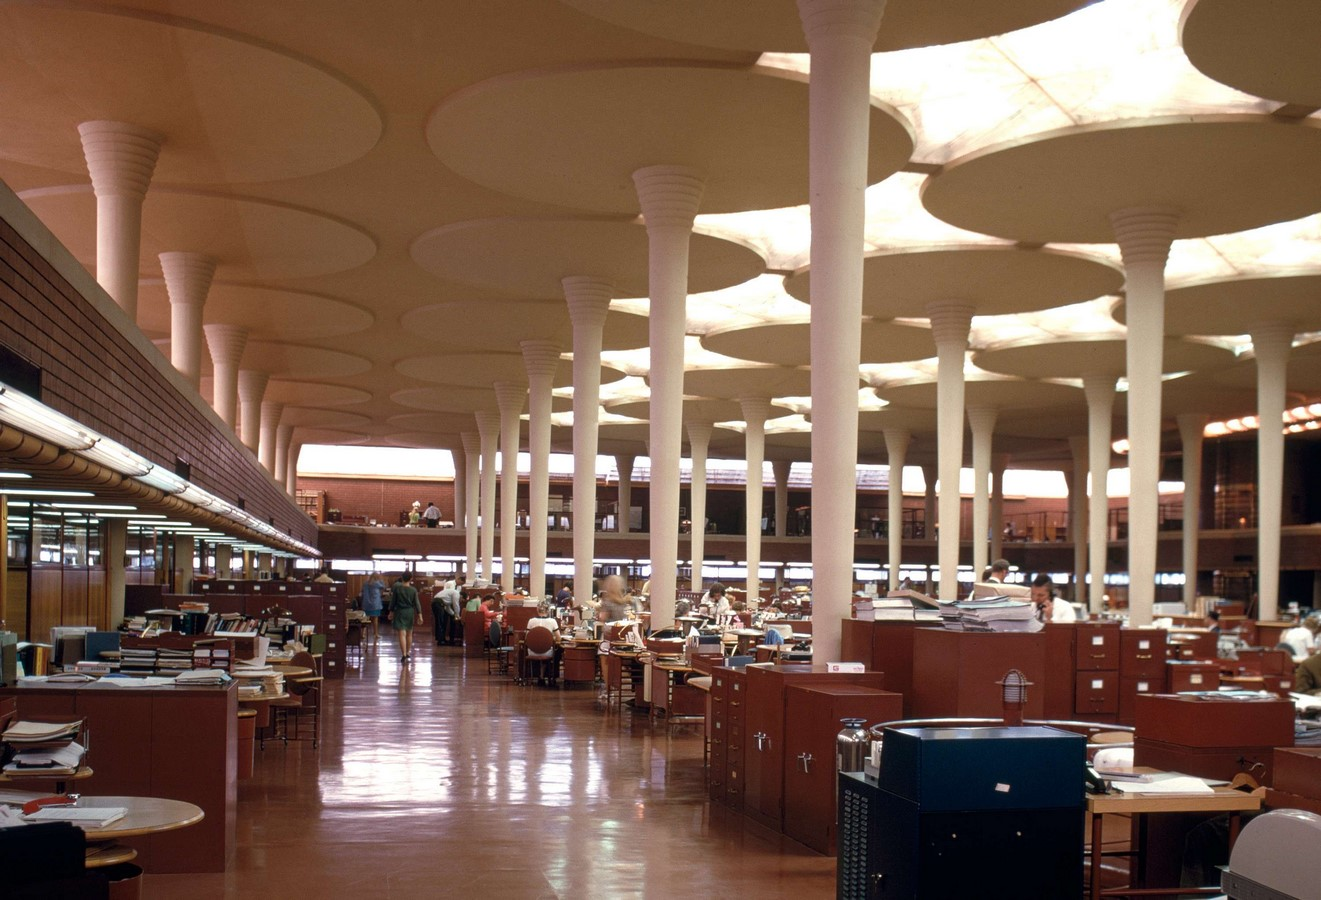 Johnson Wax Headquarters by F.L. Wright: The building with 'Lily pad' Columns - Sheet4